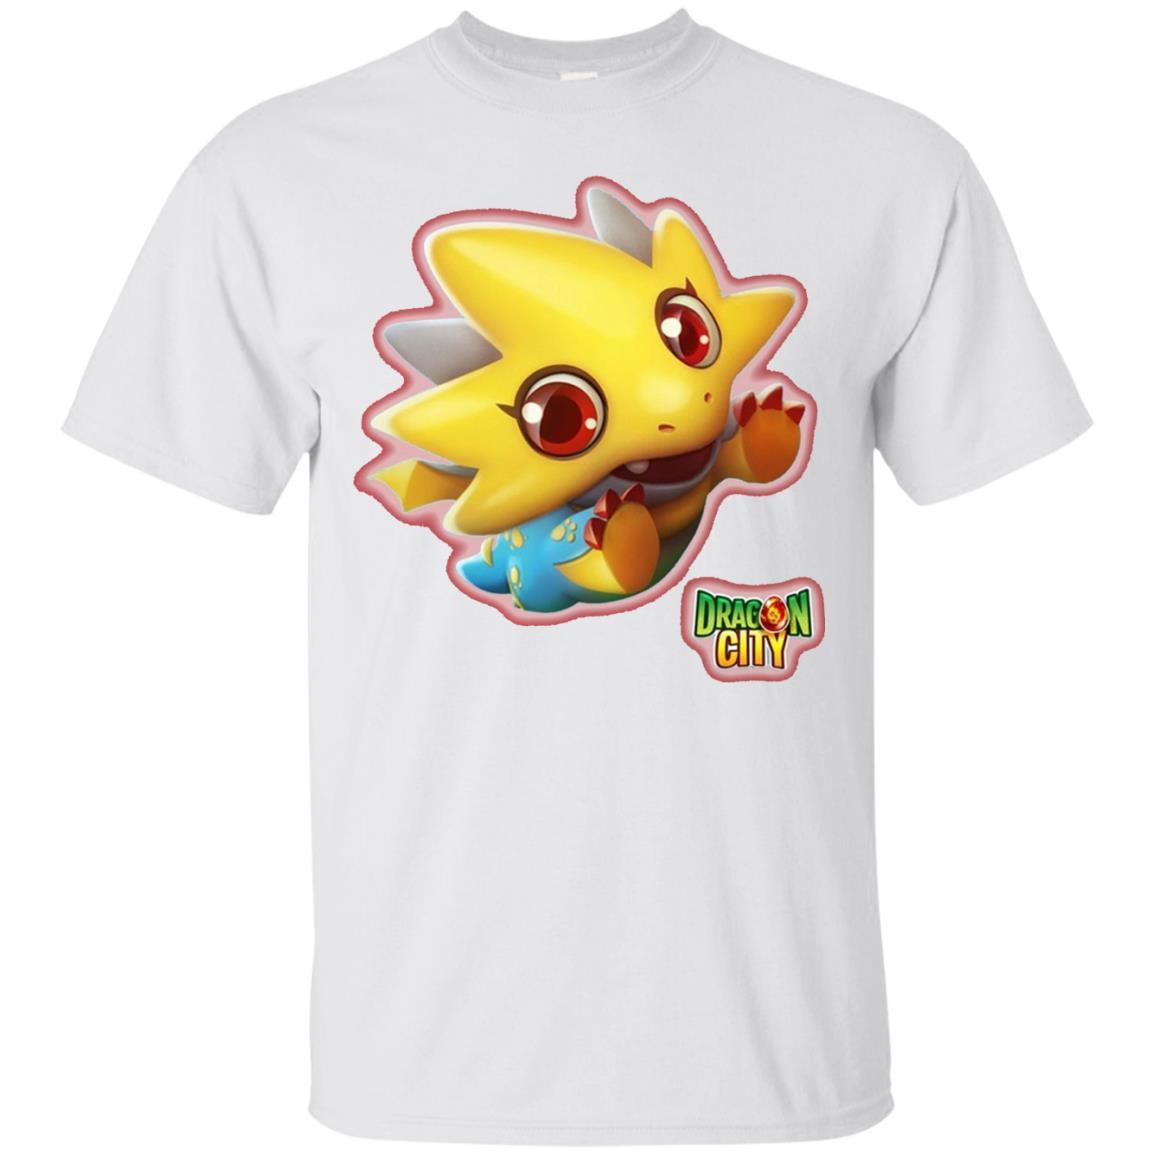 Dragon City Star Dragon T-Shirt